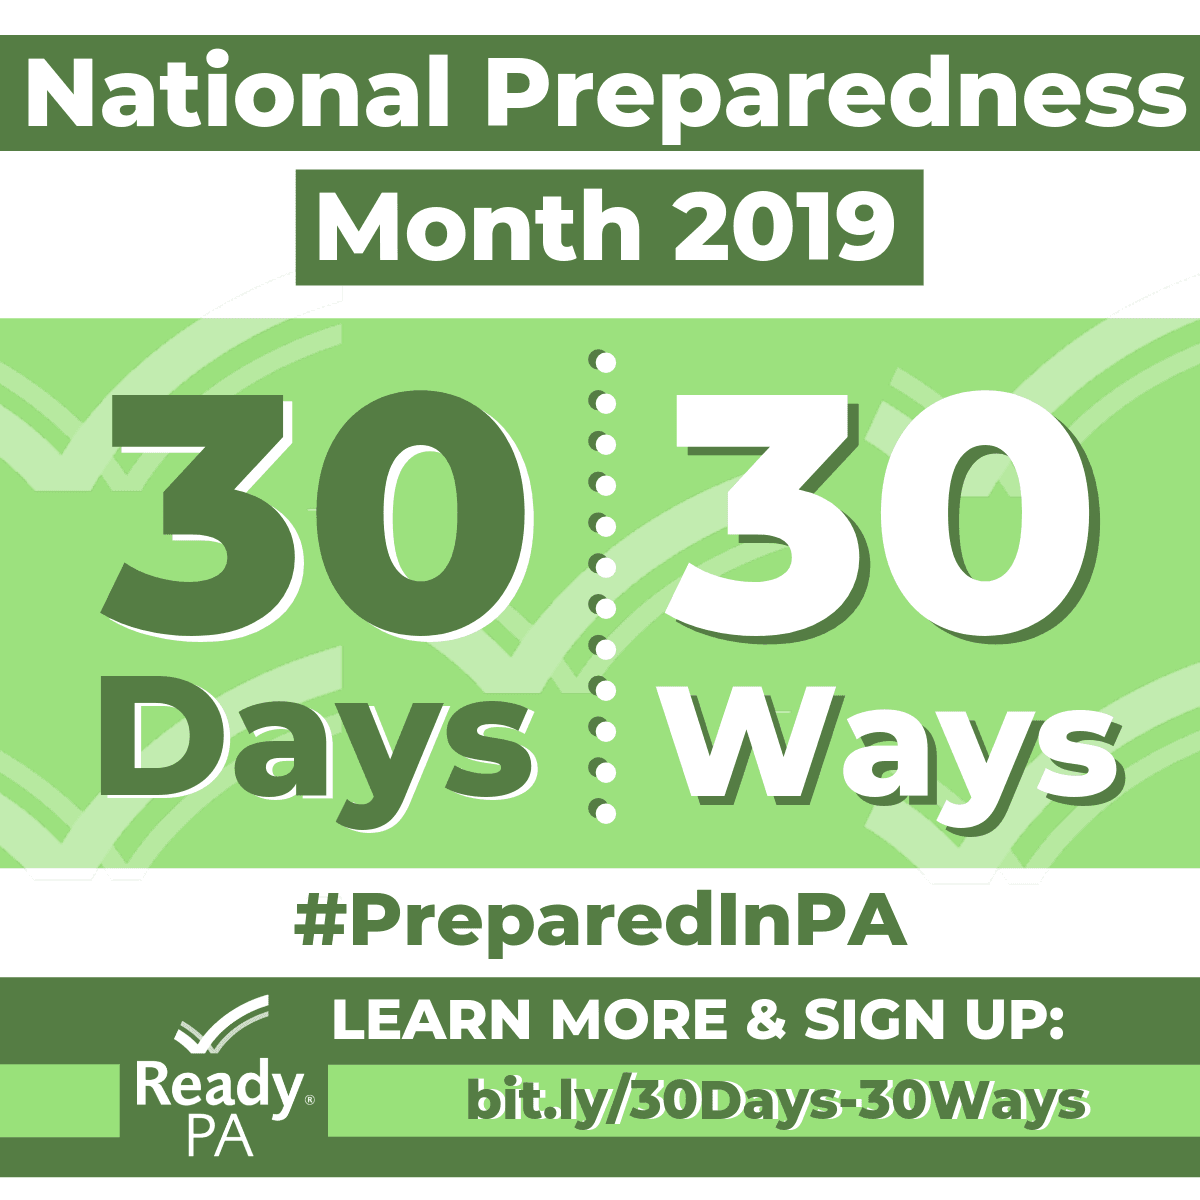 A green and white graphic promoting the 30 Days/30 Ways disaster preparedness campaign.